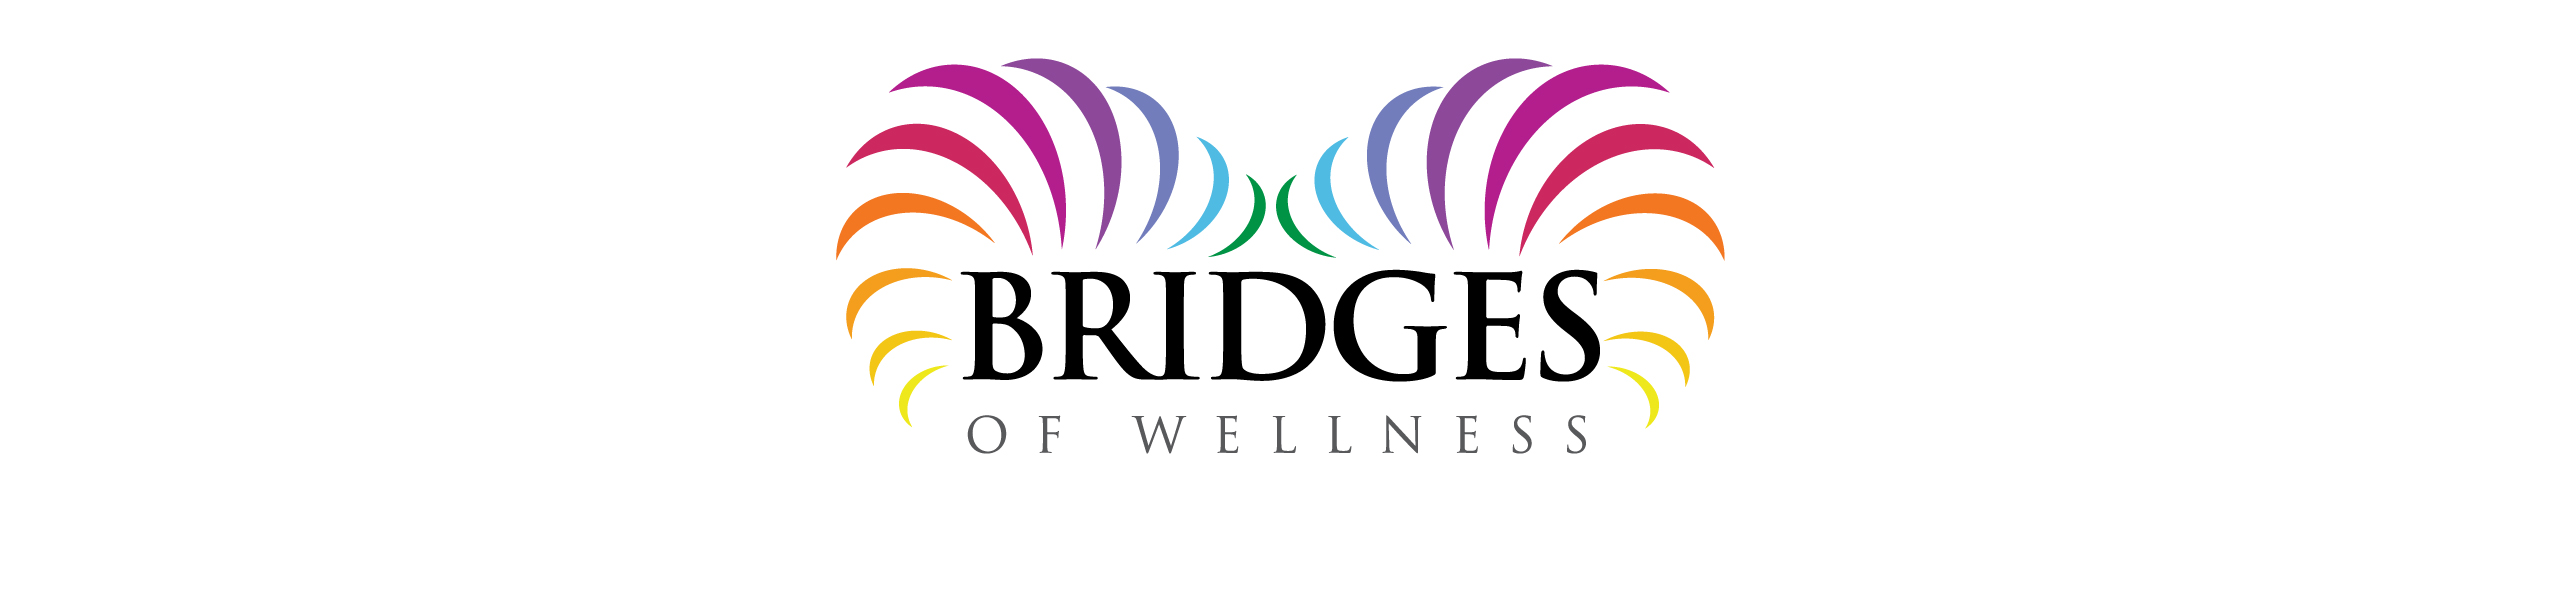 Bridges-of-Wellness_LOGO_2560x600